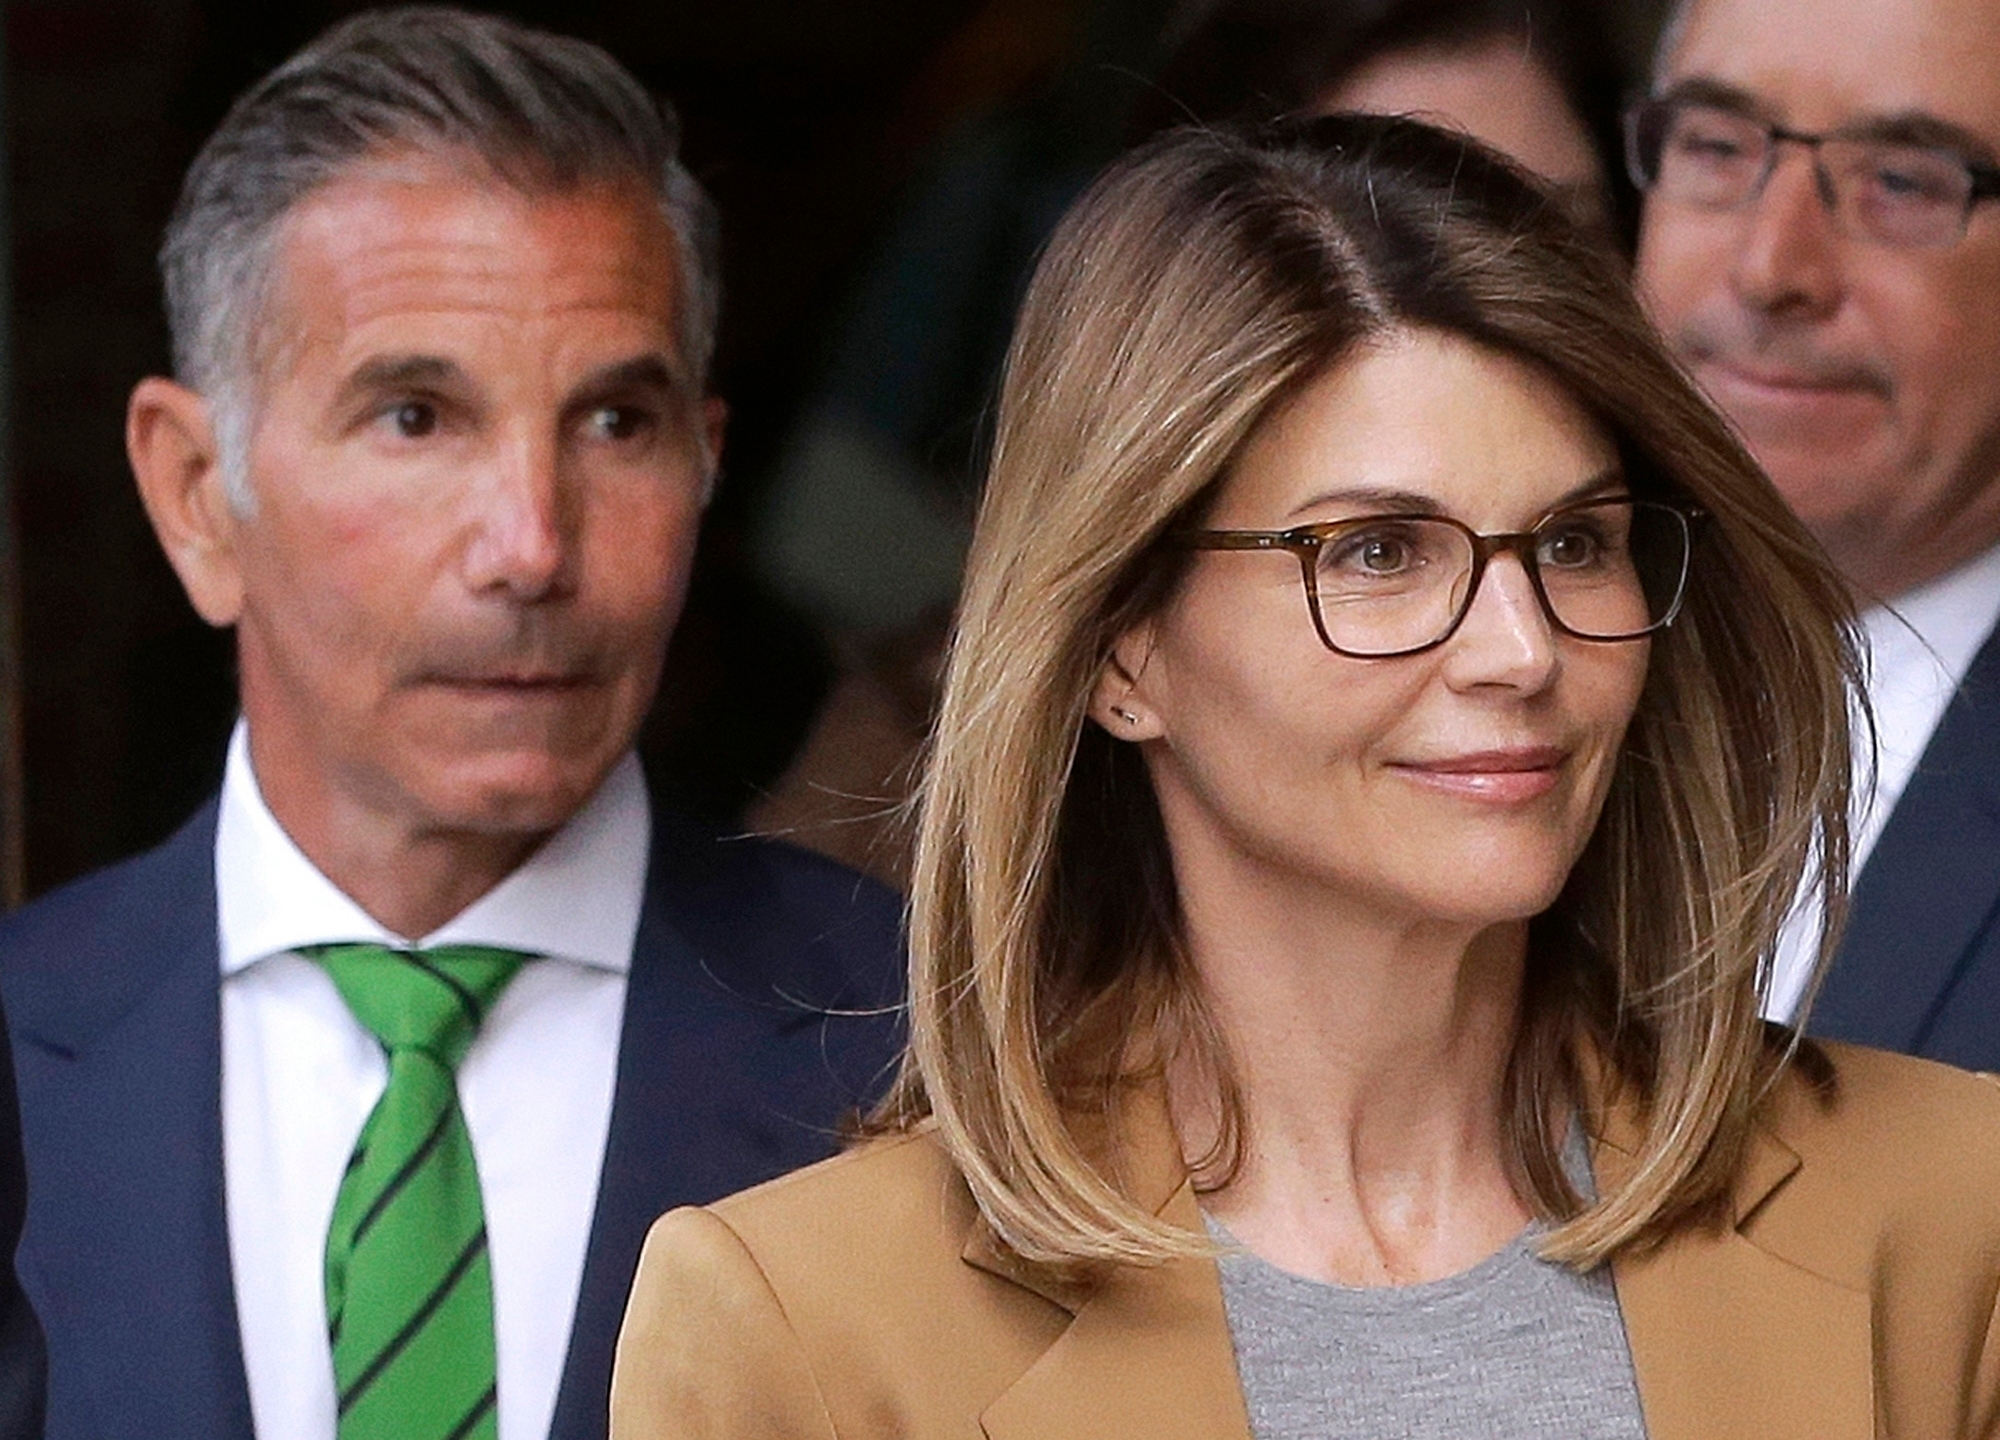 Mossimo Giannulli, Lori Loughlin